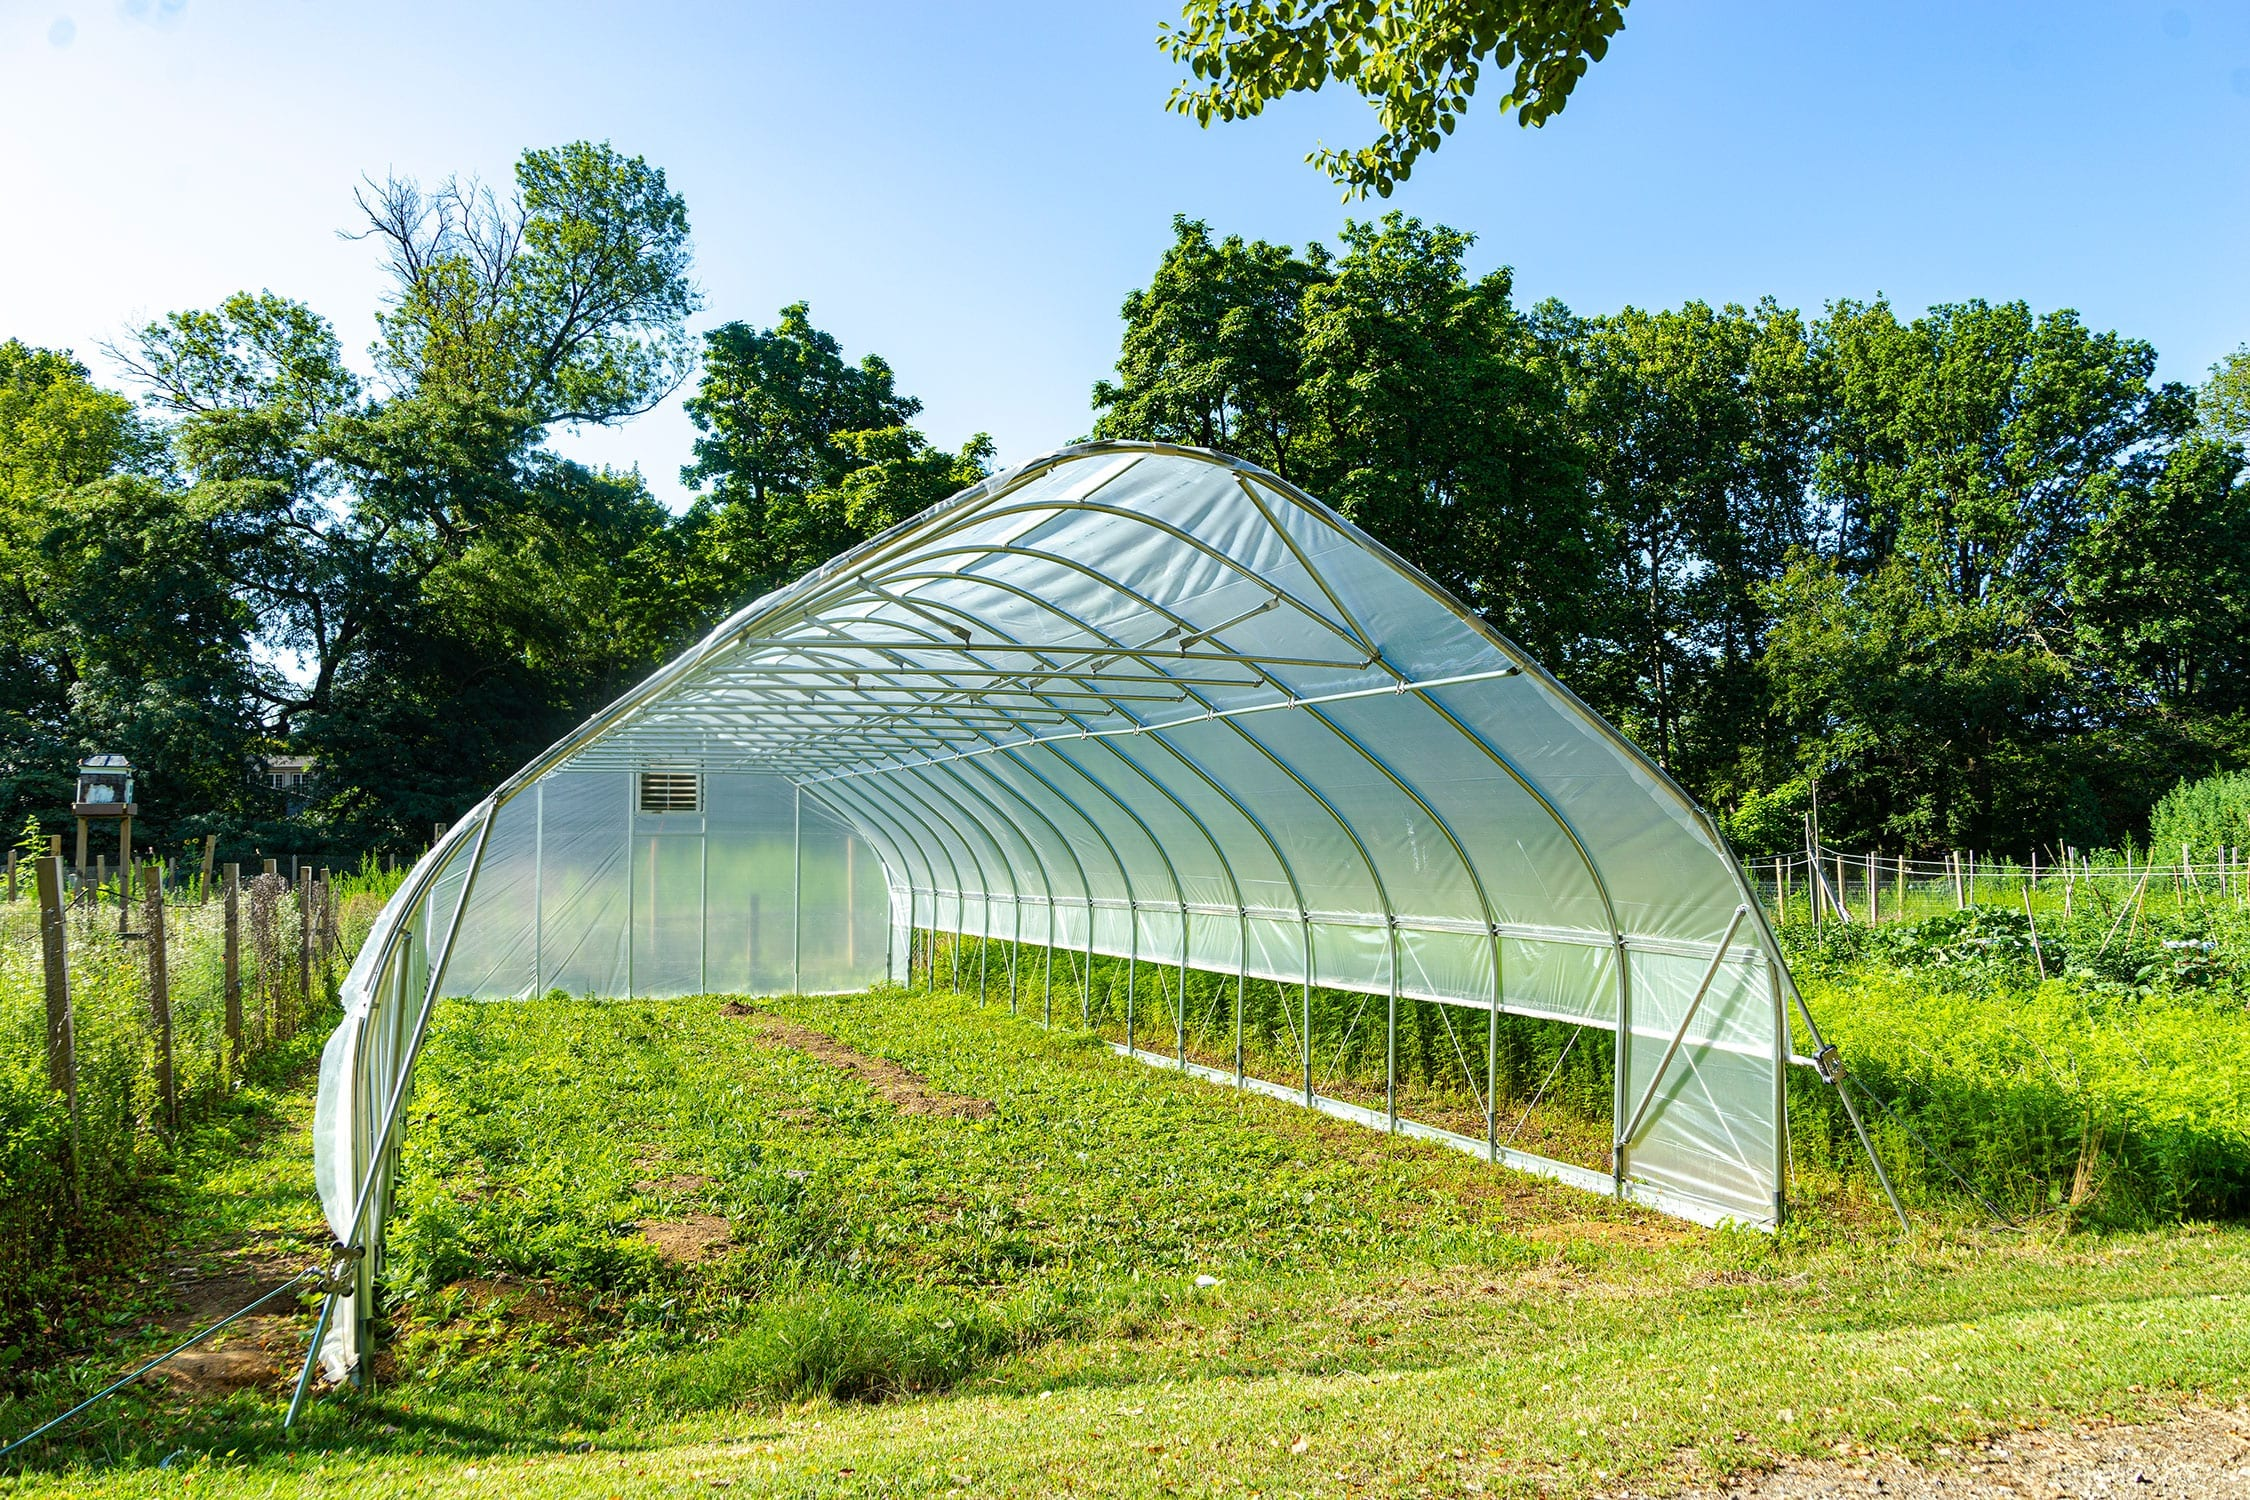 High Tunnel Comes to the Haverfarm